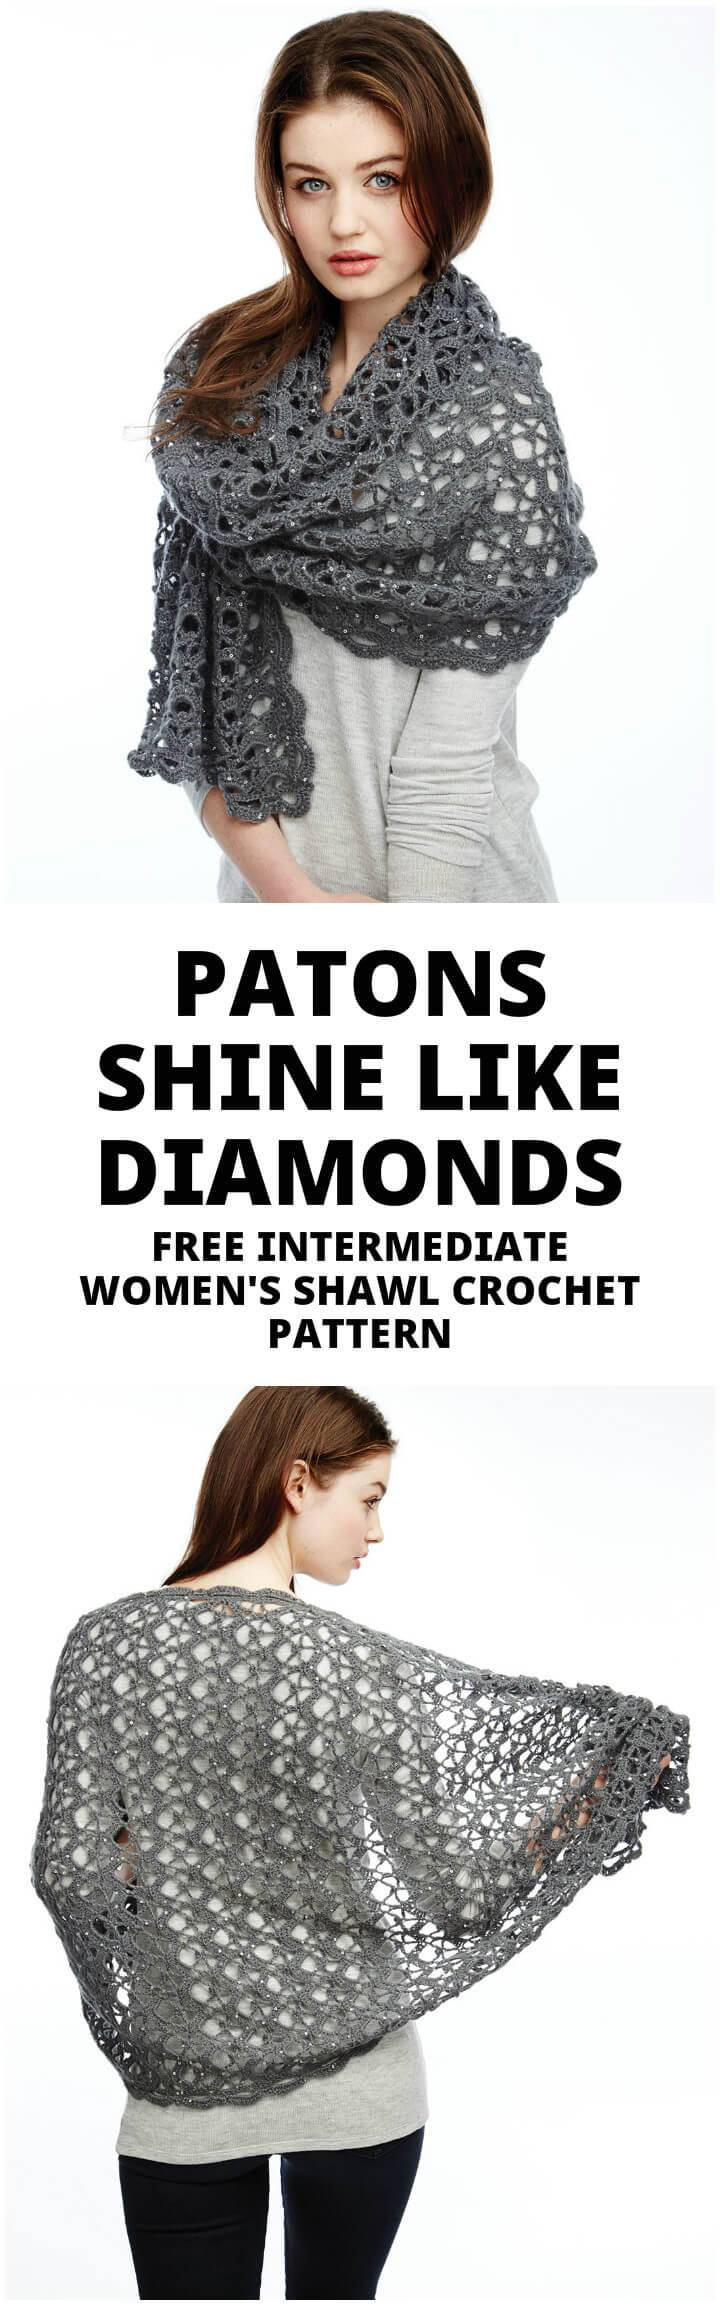 crochet patons shine like diamond shawl